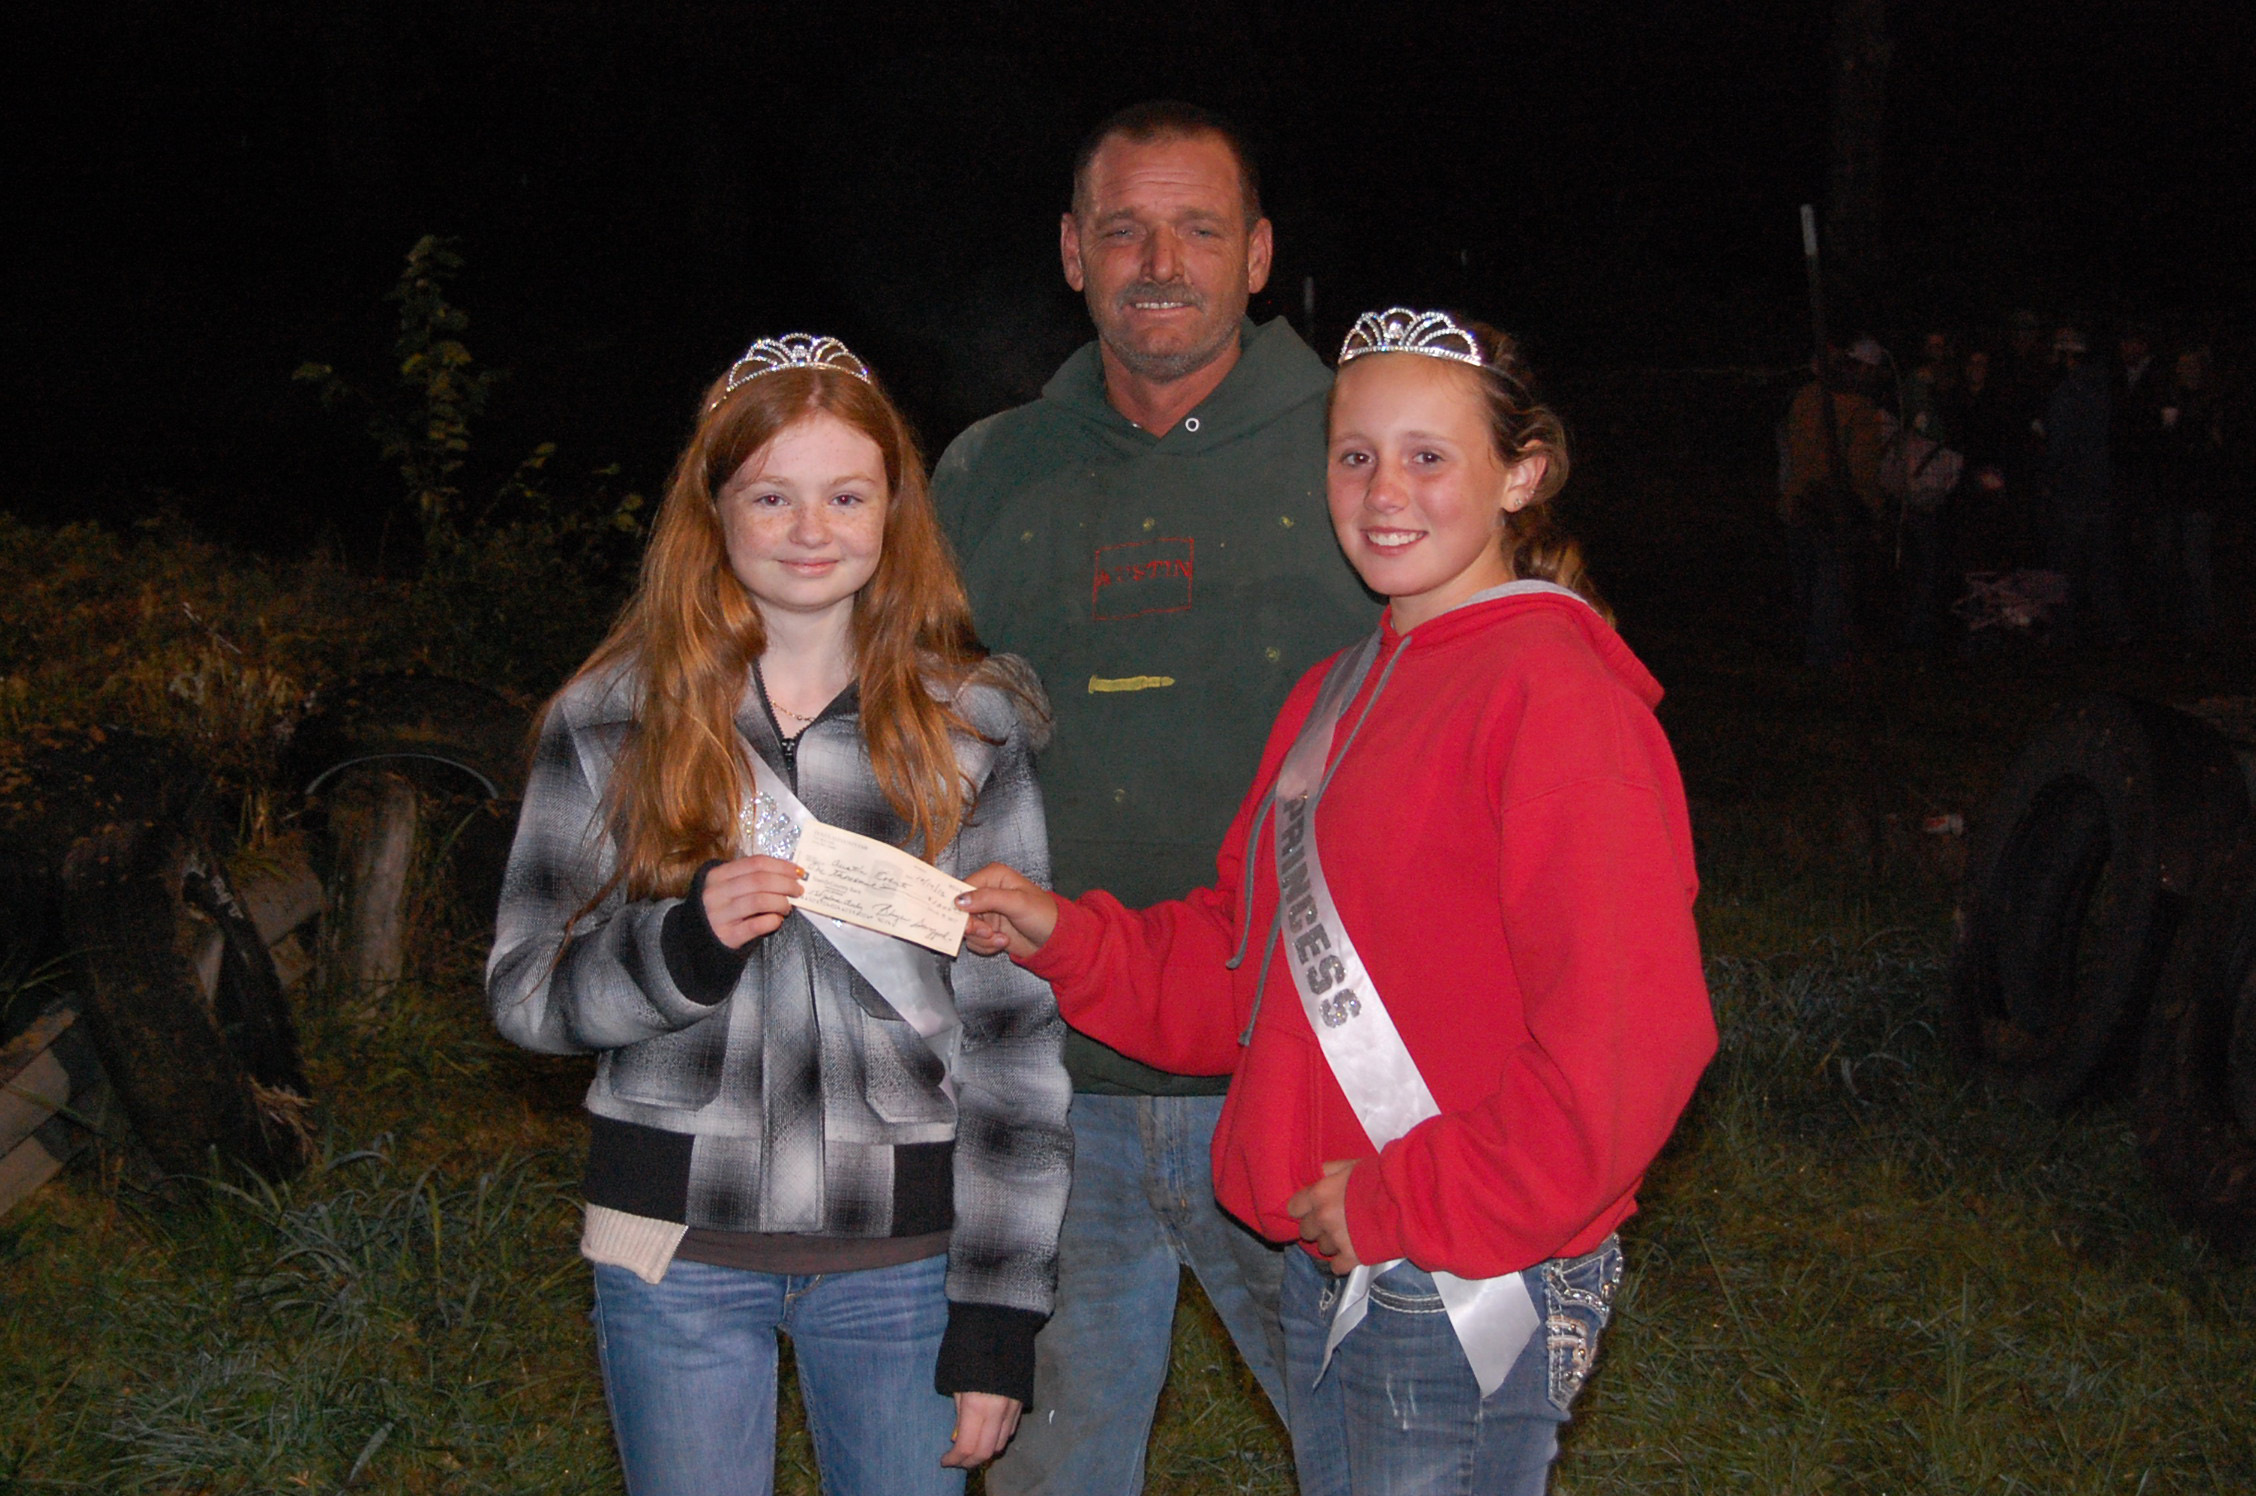 Demolition derby winner Austin Roberts, of Forsyth, is pictured here with Denim Gals Queen Crystal Fuller and Princess Dallee Sheppard, who will hand Roberts the $1,000 winner-take-all check.